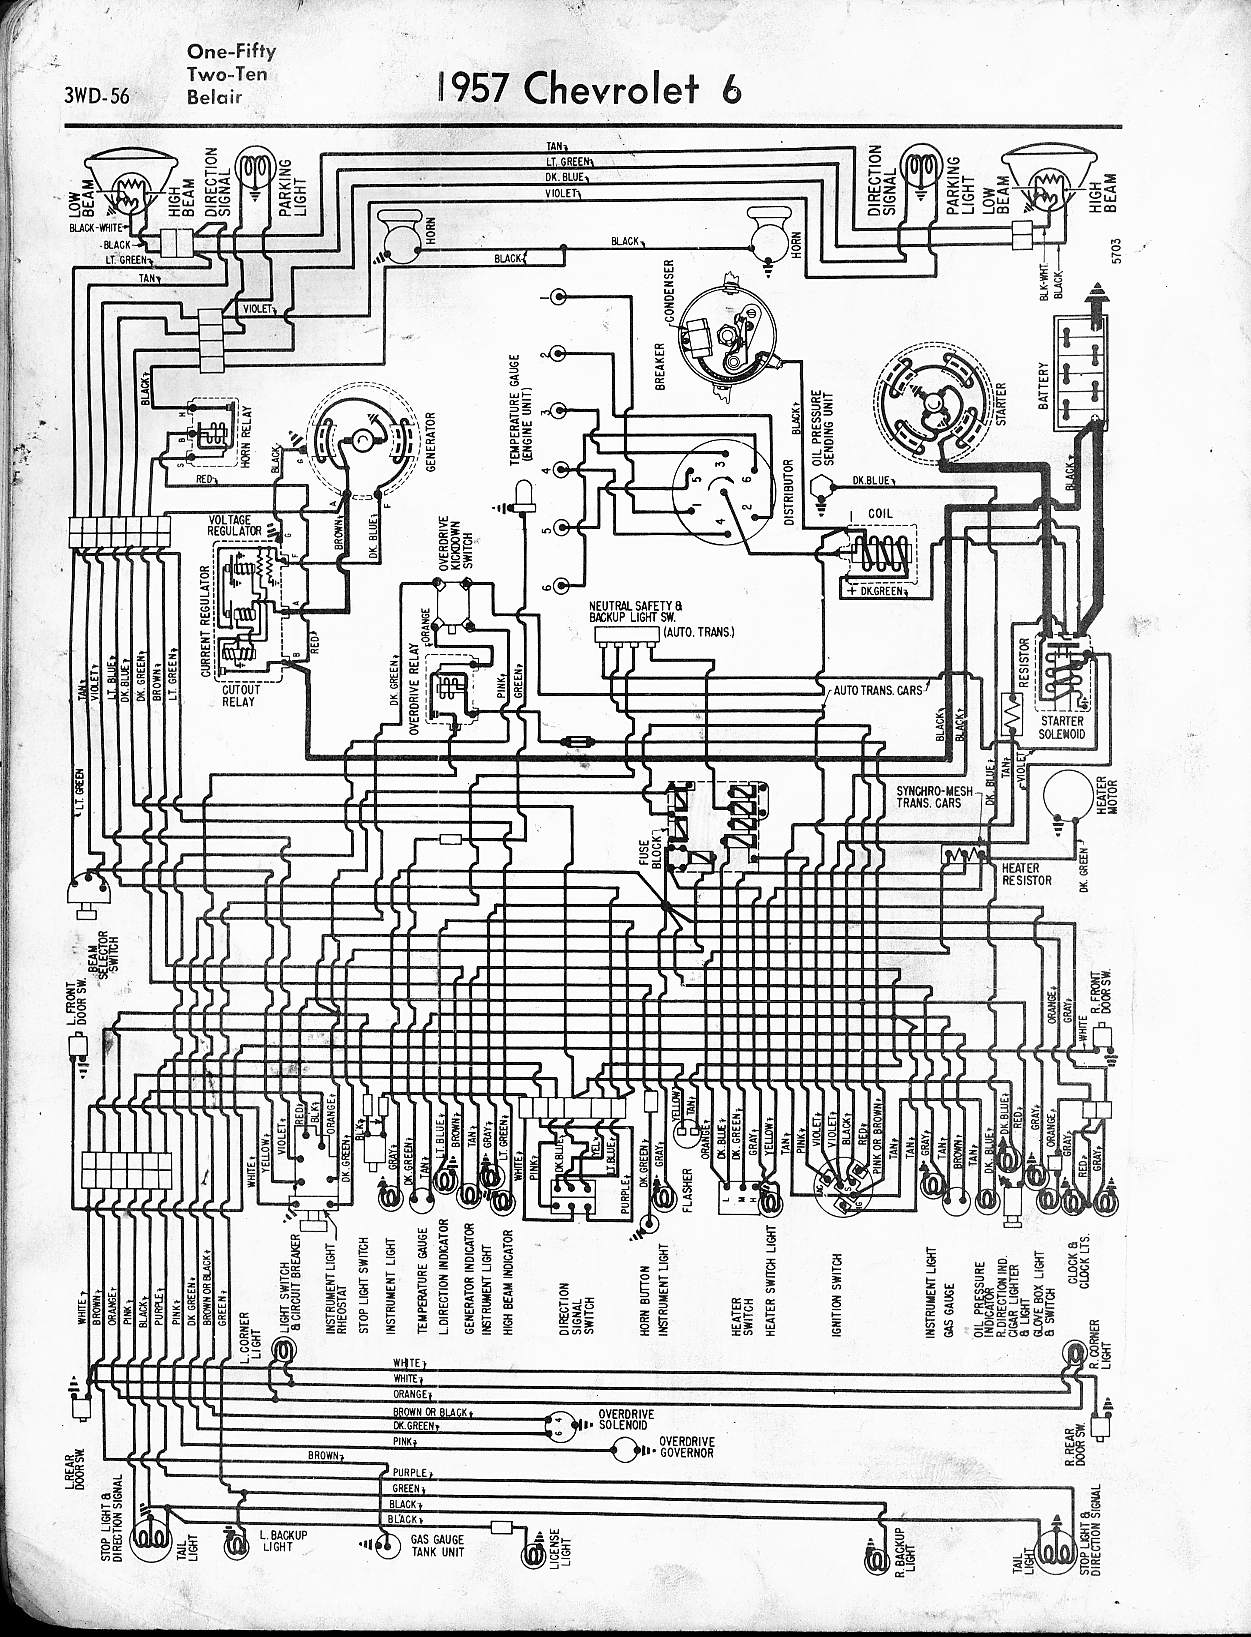 MWireChev57_3WD 056 57 65 chevy wiring diagrams 1957 chevy truck wiring diagram at fashall.co